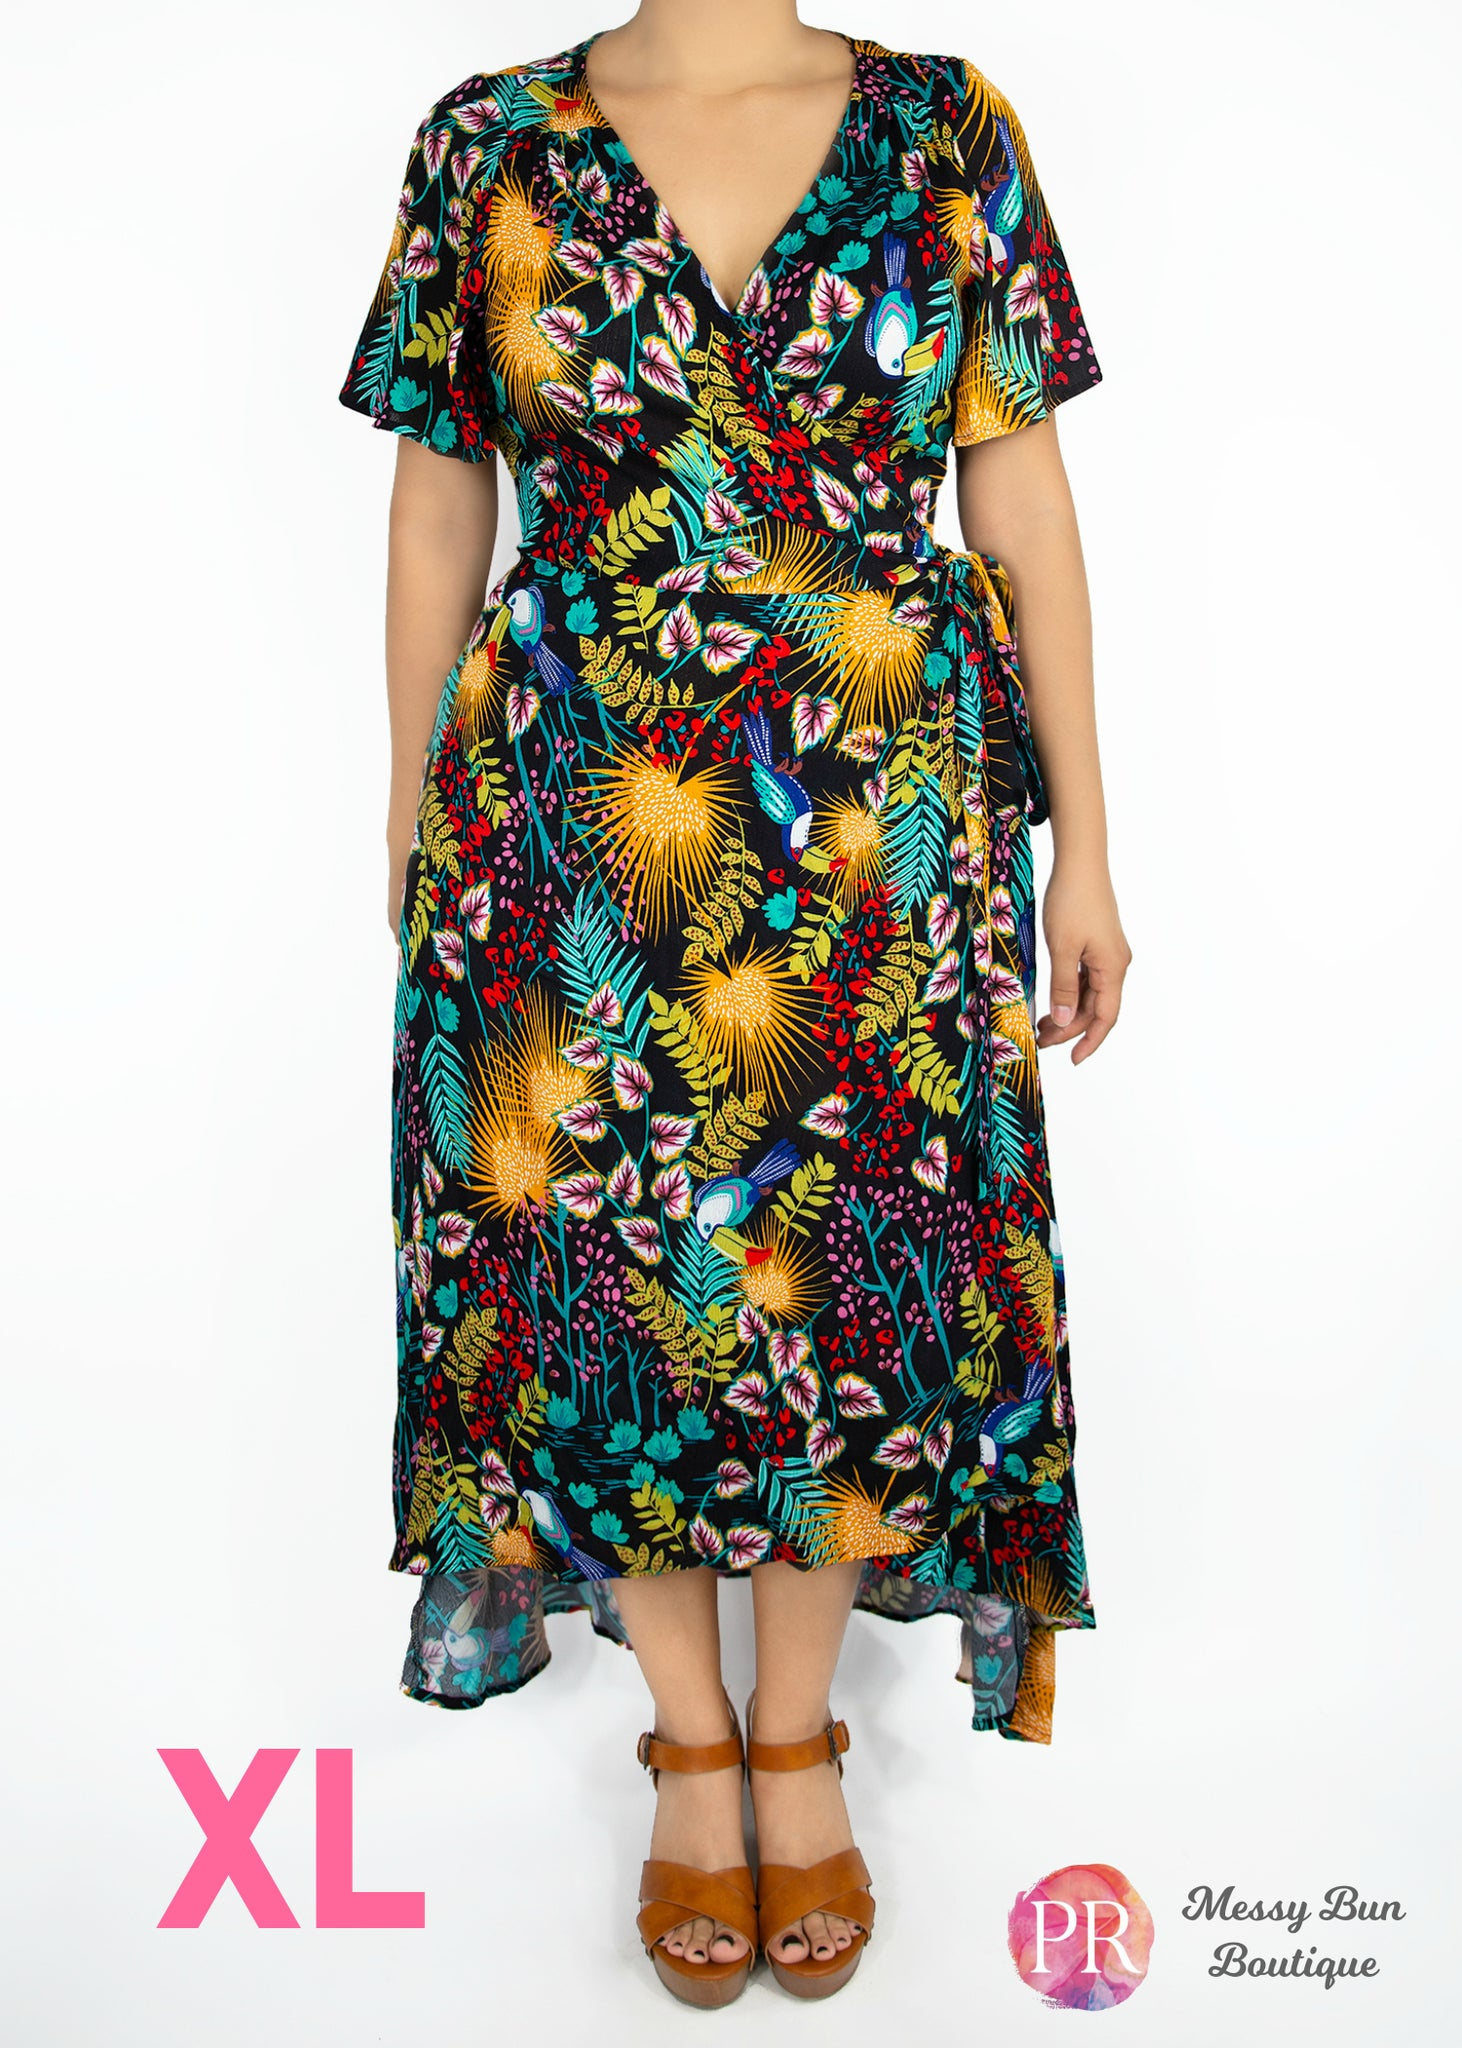 XL Black Floral Paisley Raye Primrose Dress